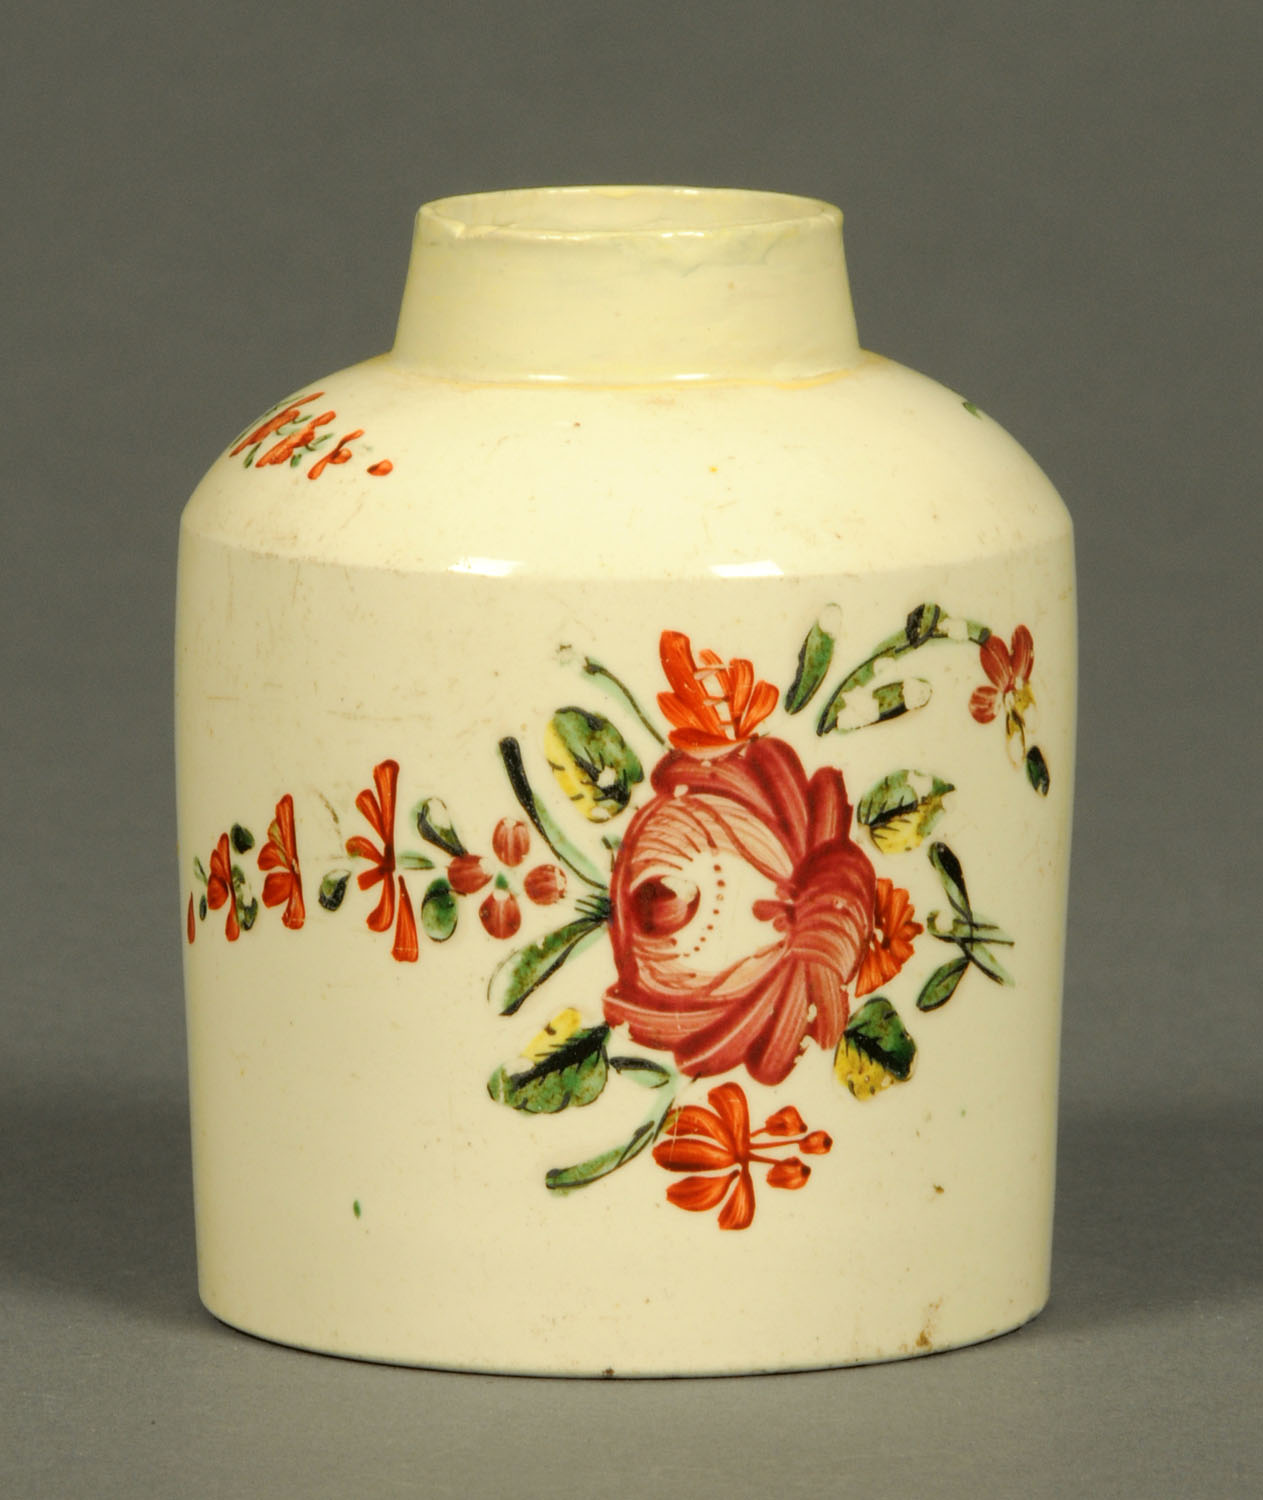 Lot 16 - A creamware tea caddy, decorated with floral bouquet and sprigs (lid lacking). Length 10 cm.